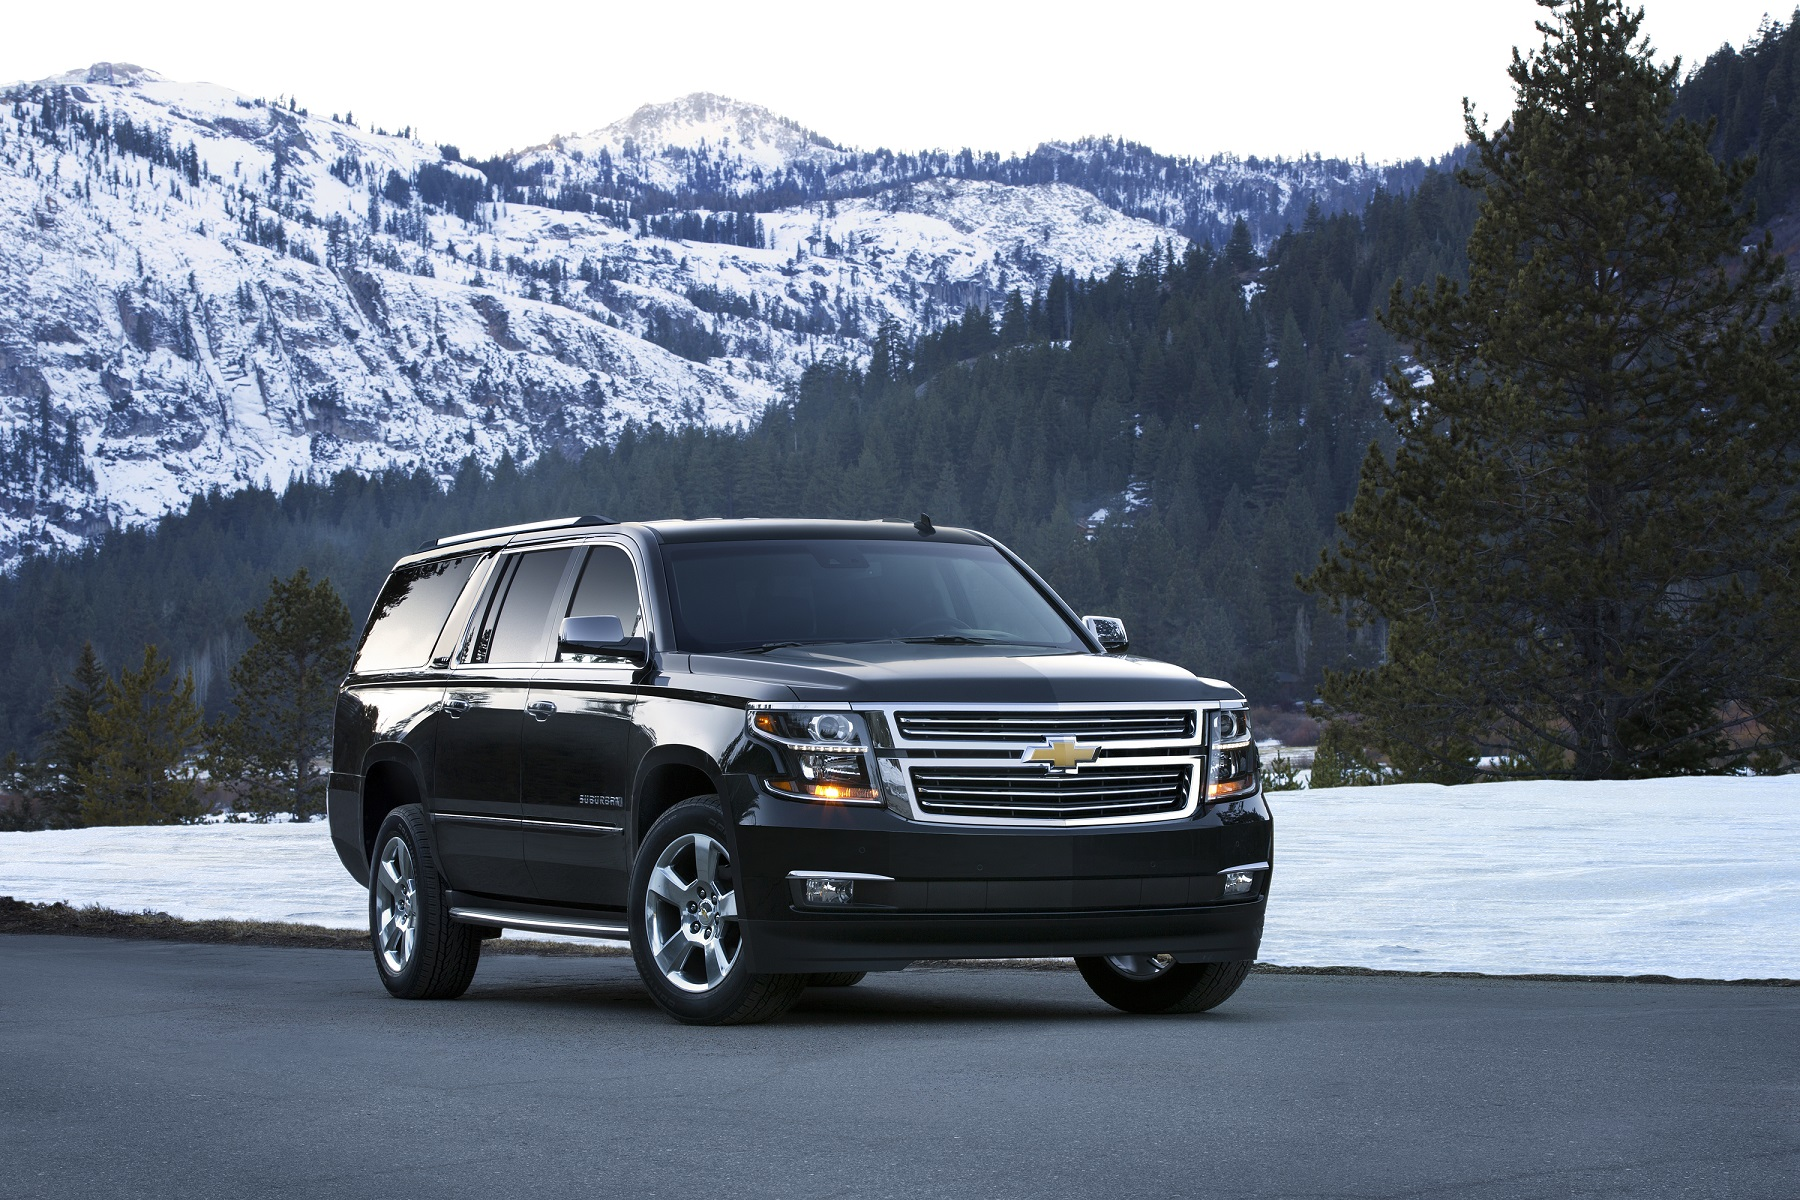 2016 Chevy Suburban: Made for Modern Life - New on Wheels - - GrooveCar